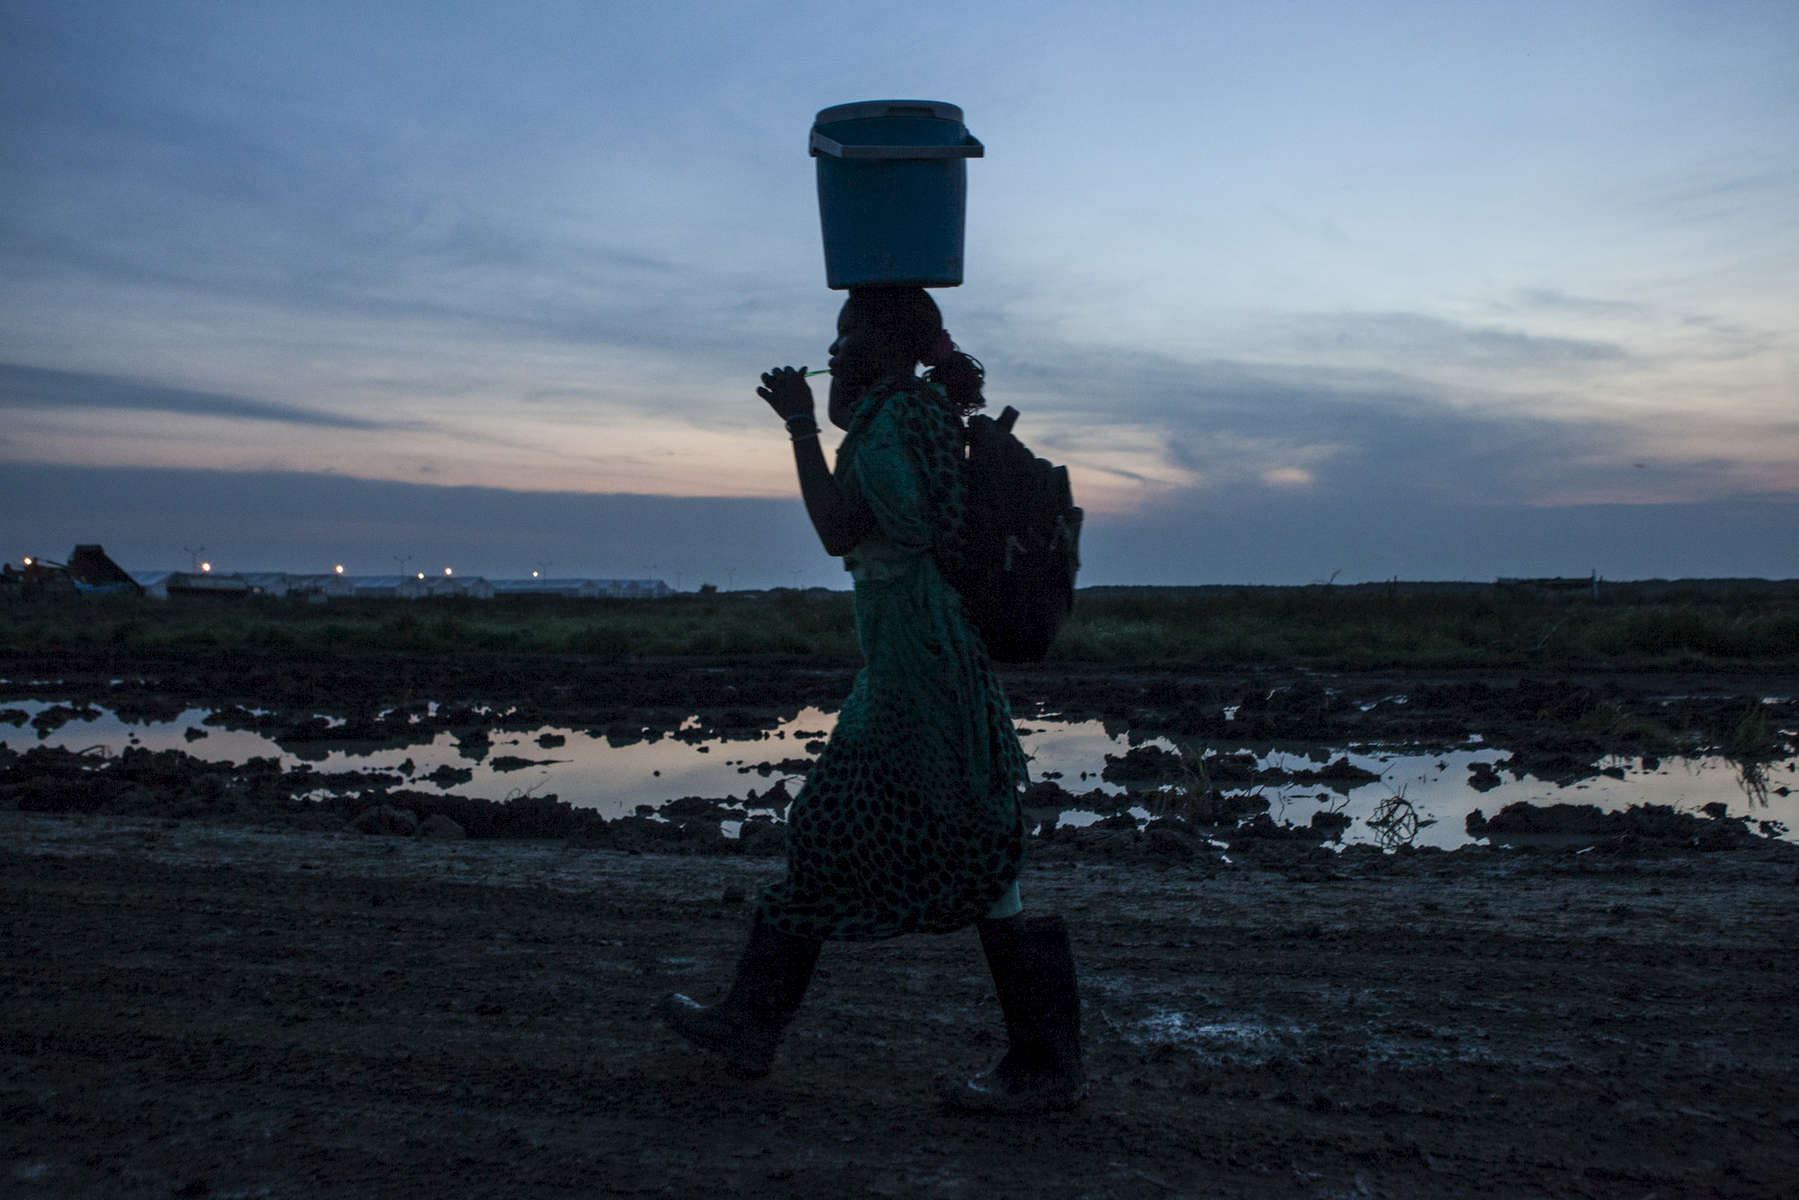 A woman brushes her teeth at dawn while leaving the camp to farm outside the Protection of Civilians (POC) site at the United Nations Mission in South Sudan (UNMISS) compound in Malakal, South Sudan on Wednesday, July 13, 2016. The Malakal POC site houses over 32,000 displaced people mainly from the Shilluk and Nuer tribes. In February of this year, members of the Dinka tribe, who resided in the camp at the time, carried out a coordinated attack within the site leading to the destruction of hundreds of shelters and many deaths. Since then, most members of the Dinka tribe have fled to Malakal town where they occupy the homes of those still displaced.